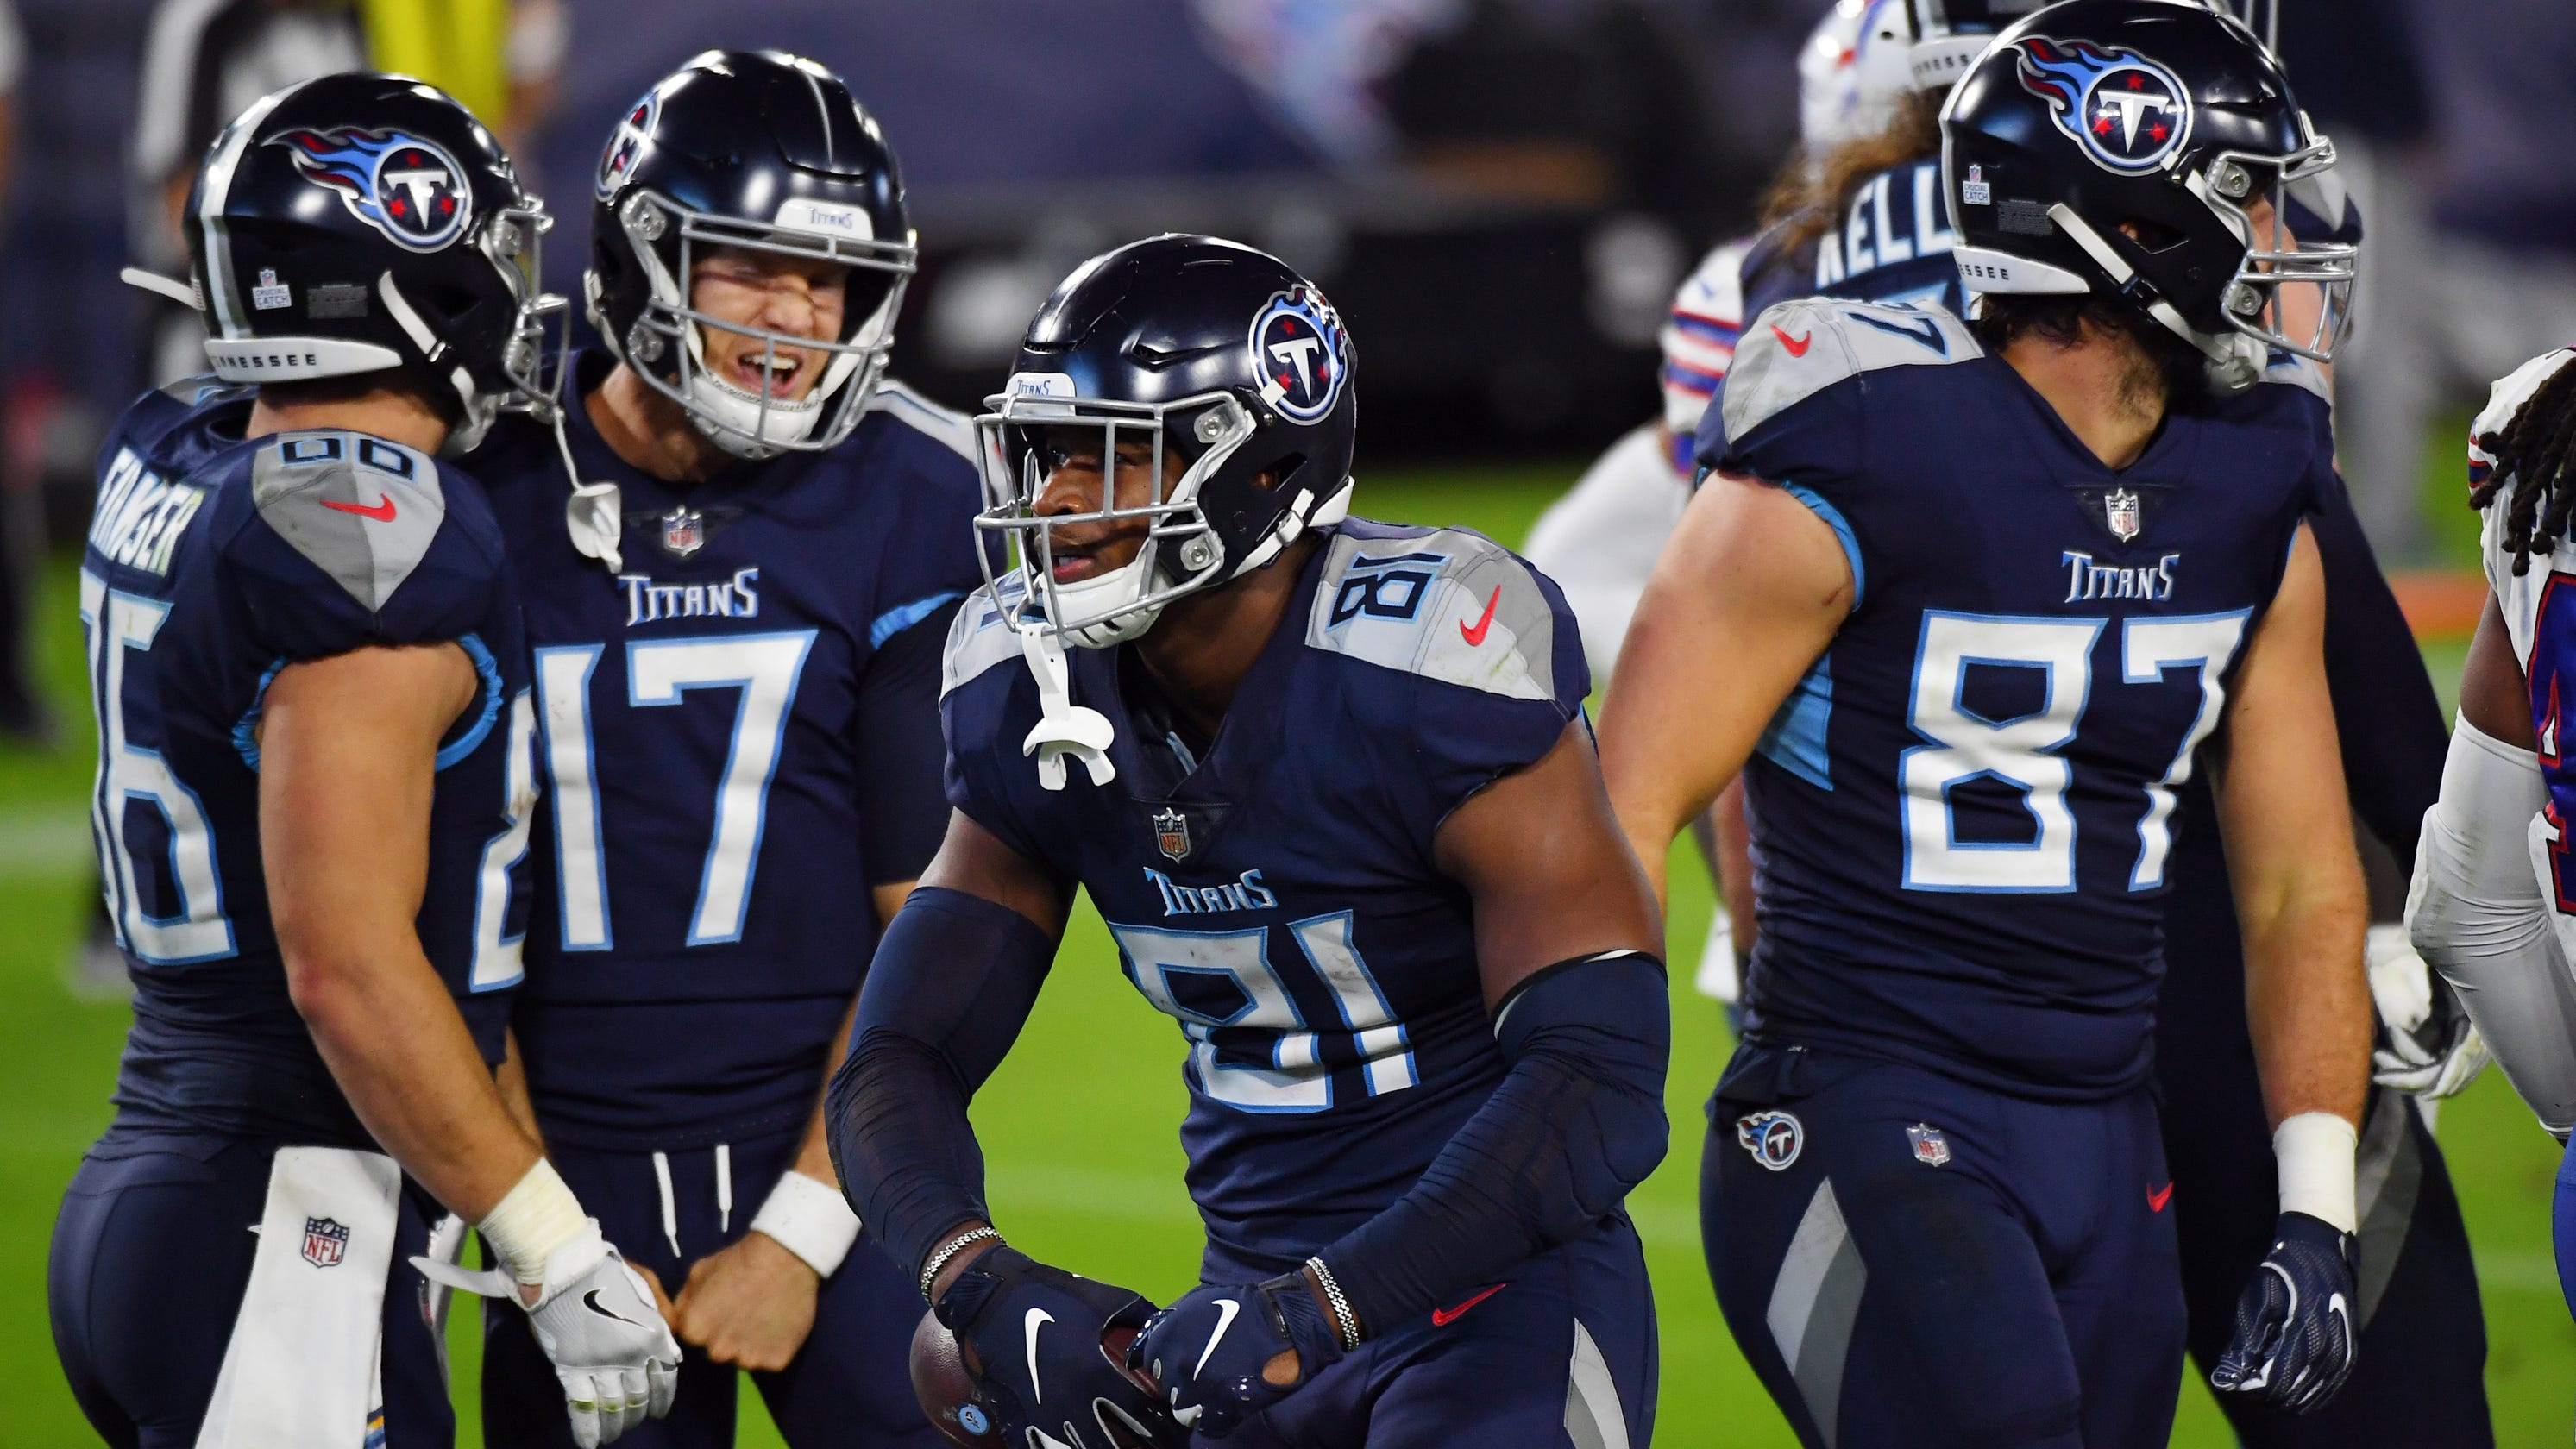 Tennessee Titans roll Buffalo Bills in first game after COVID-19 outbreak – USA TODAY